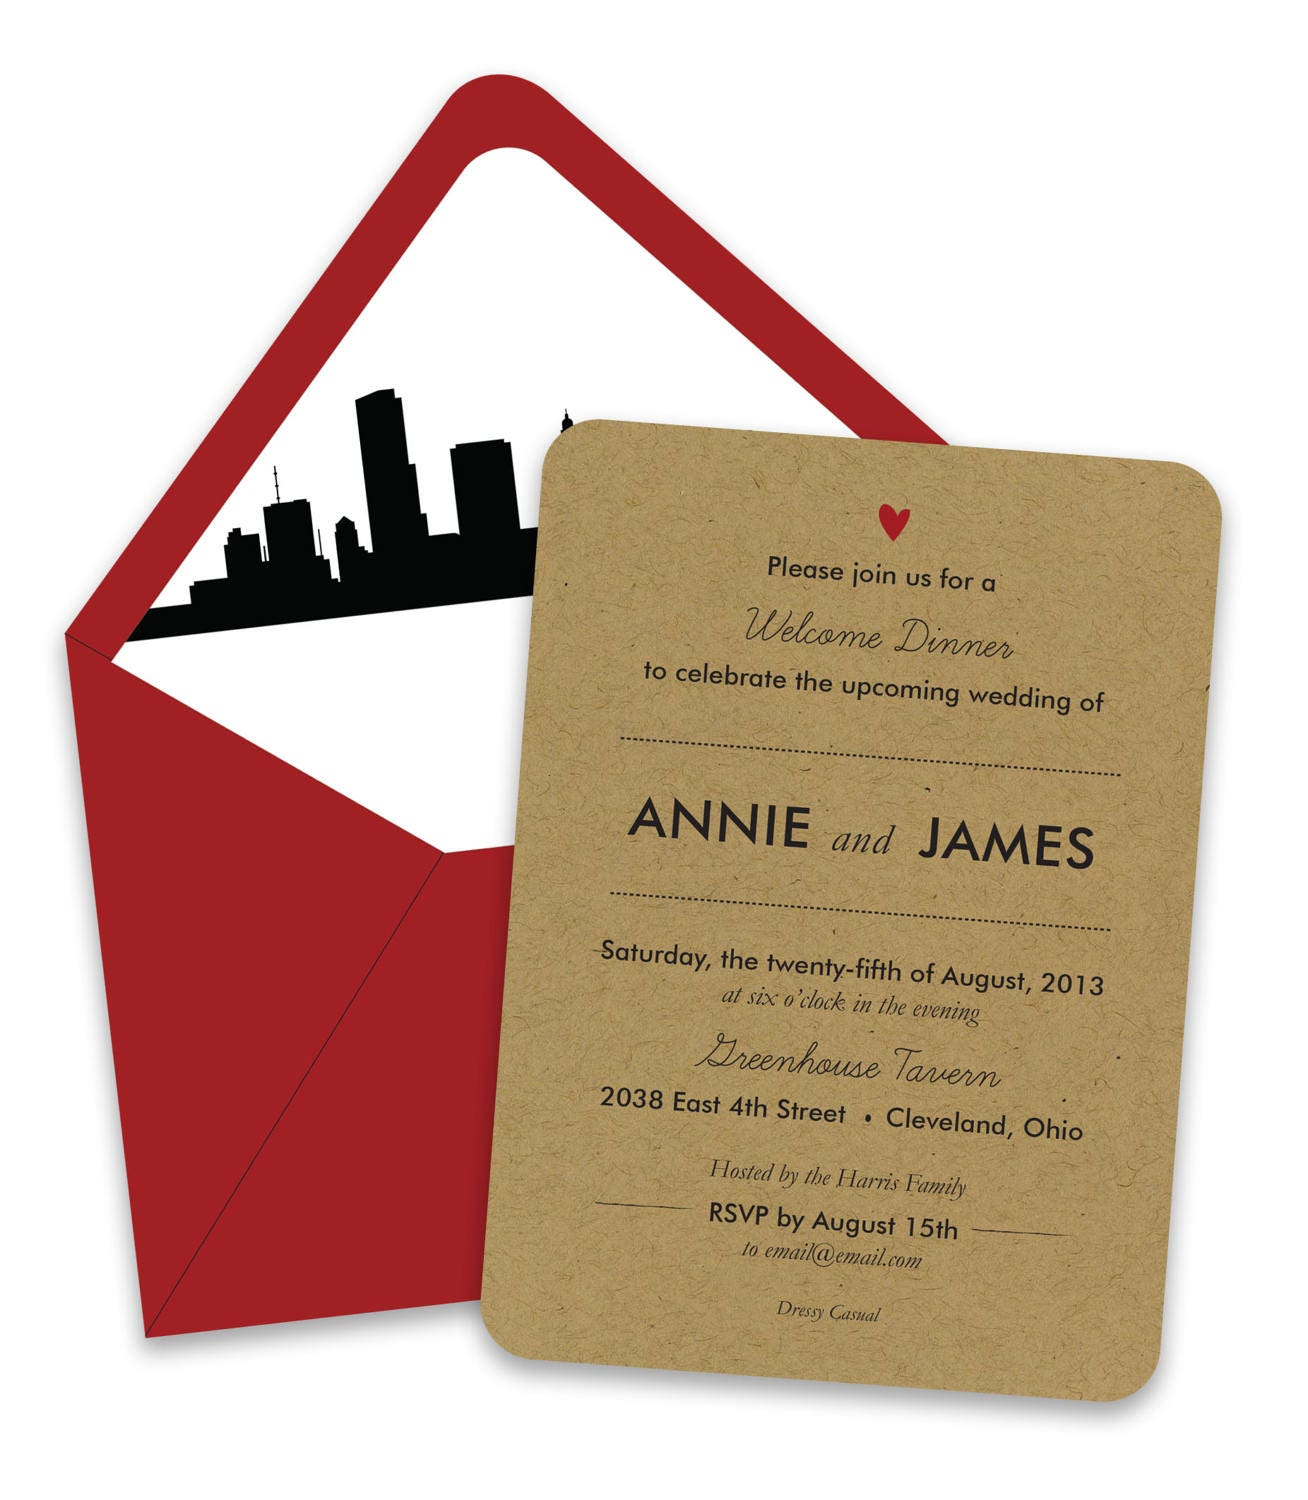 Skyline rehearsal dinner invitations zoom monicamarmolfo Image collections